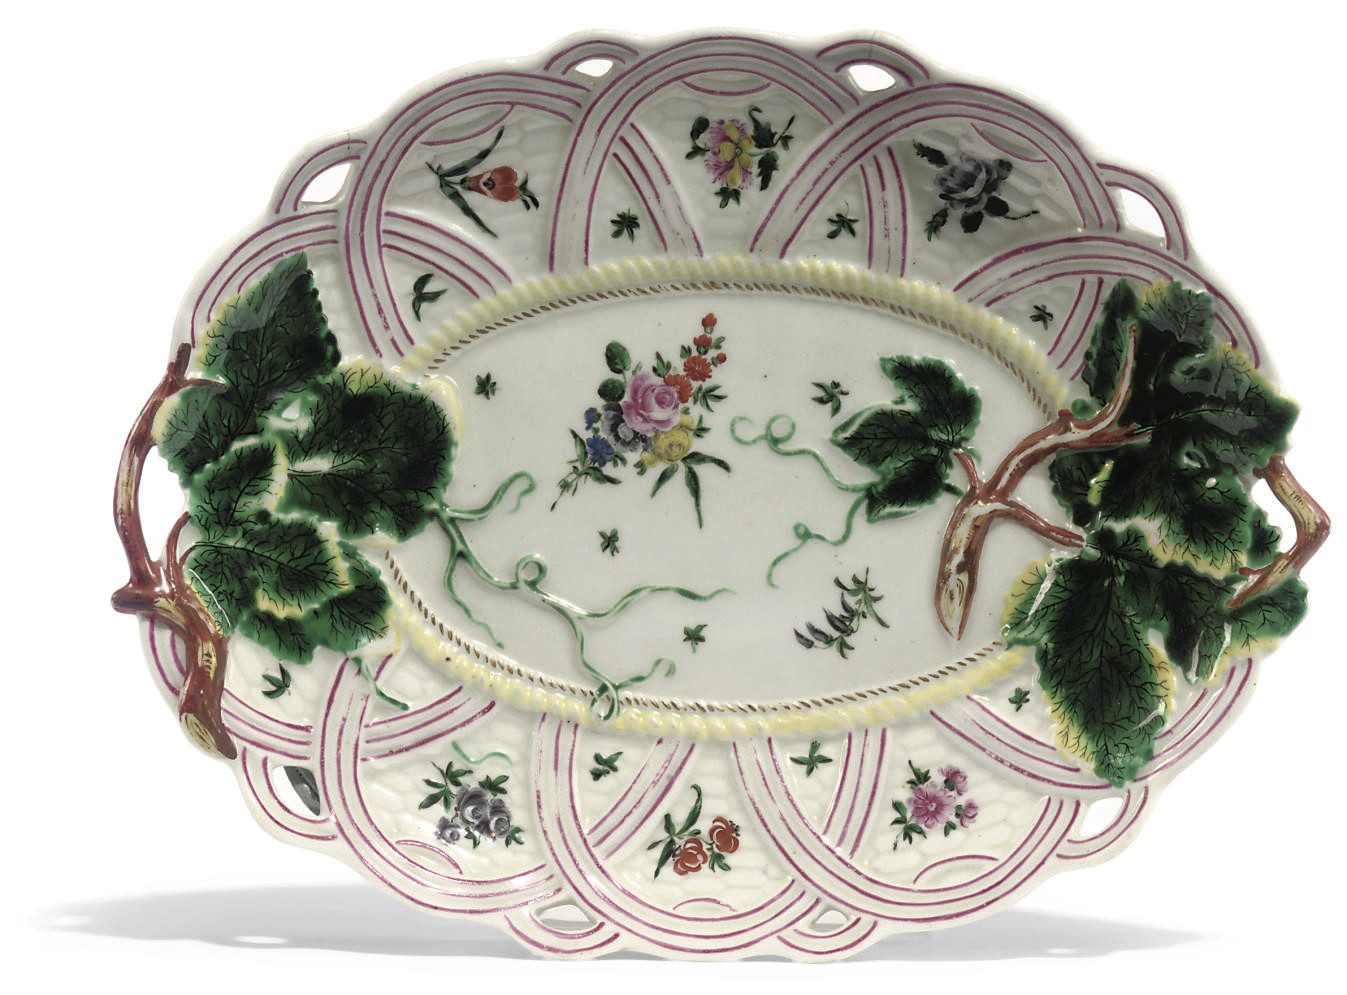 A WORCESTER TWO-HANDLED PIERCED SHAPED OVAL DISH